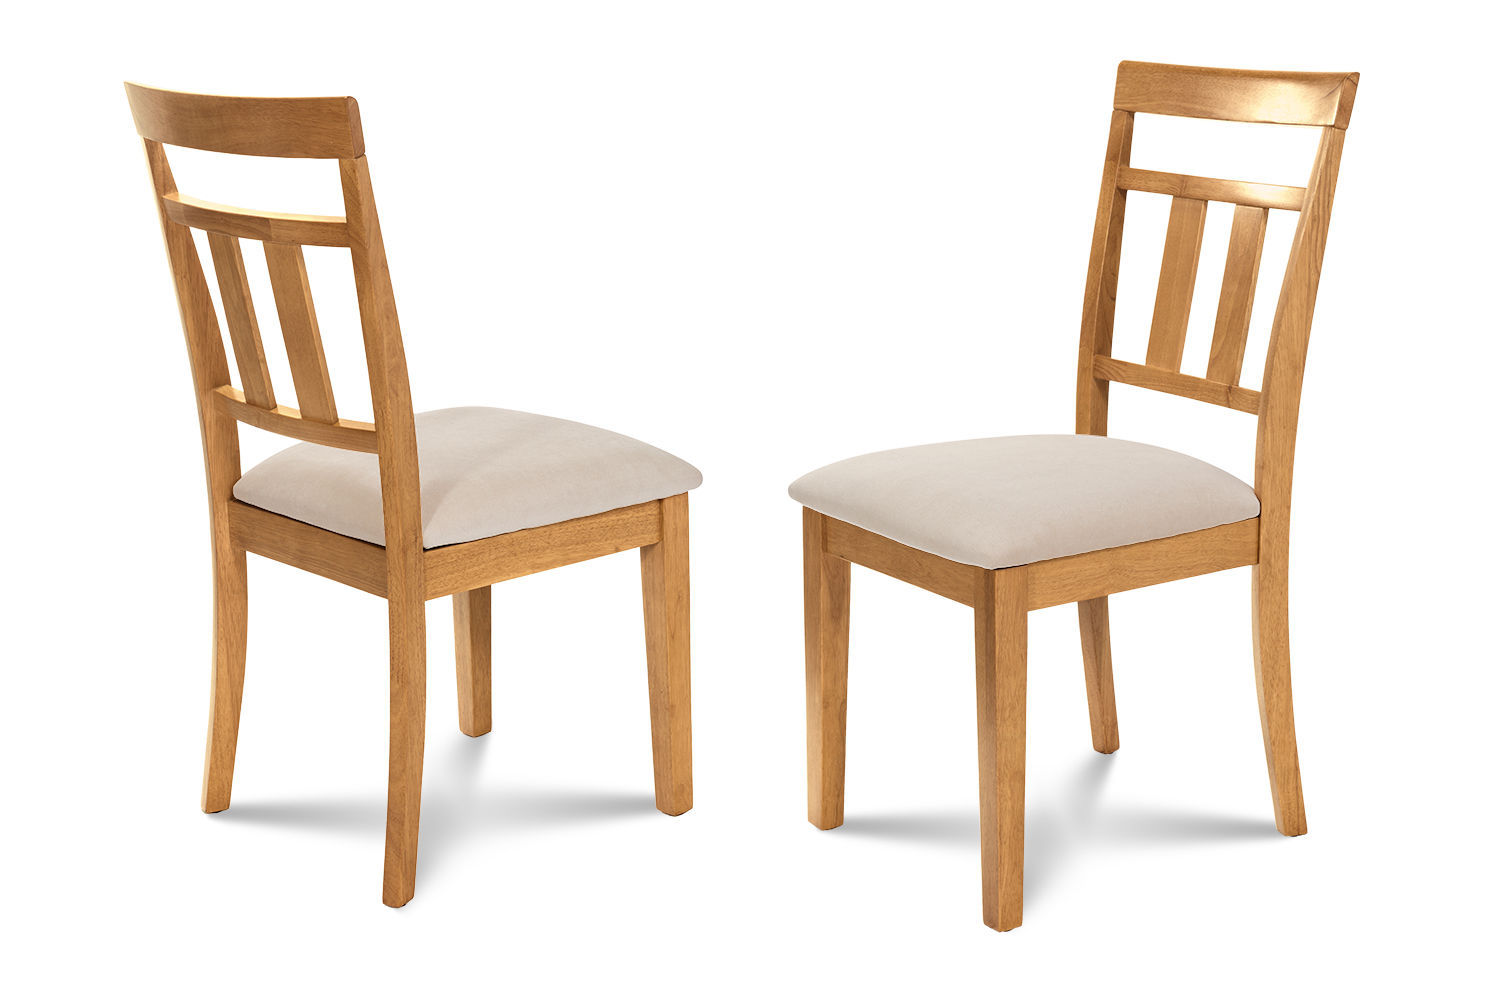 oak kitchen chairs diamond chair replica set of 2 dining side w soft padded seat in